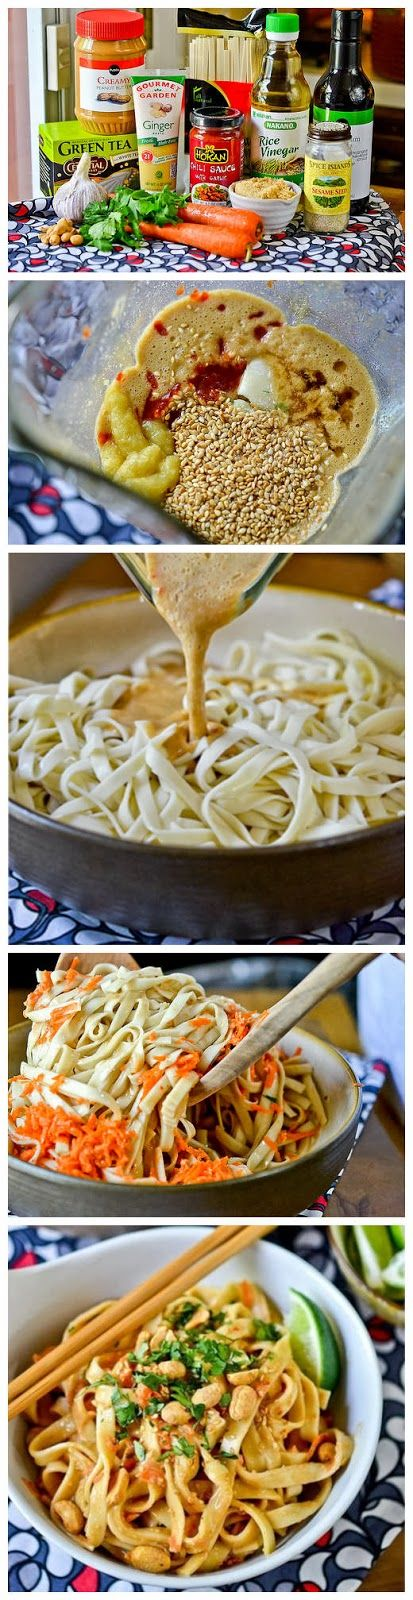 Cold Peanut-Sesame Noodles - Greg loves this. Add extra peanut butter.